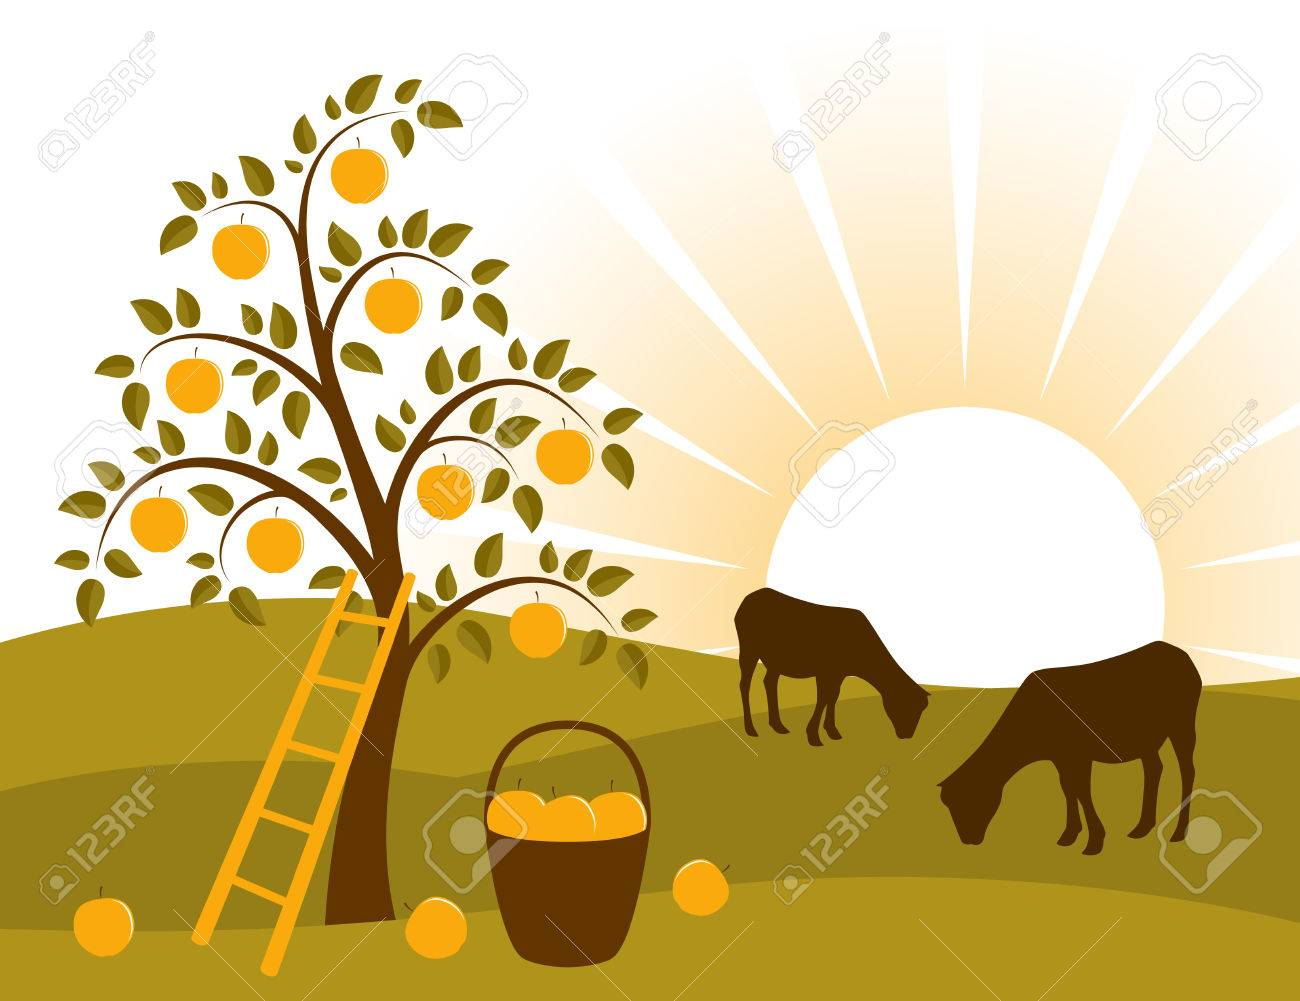 vector background with apple tree and grazing goats Stock Vector - 8440802